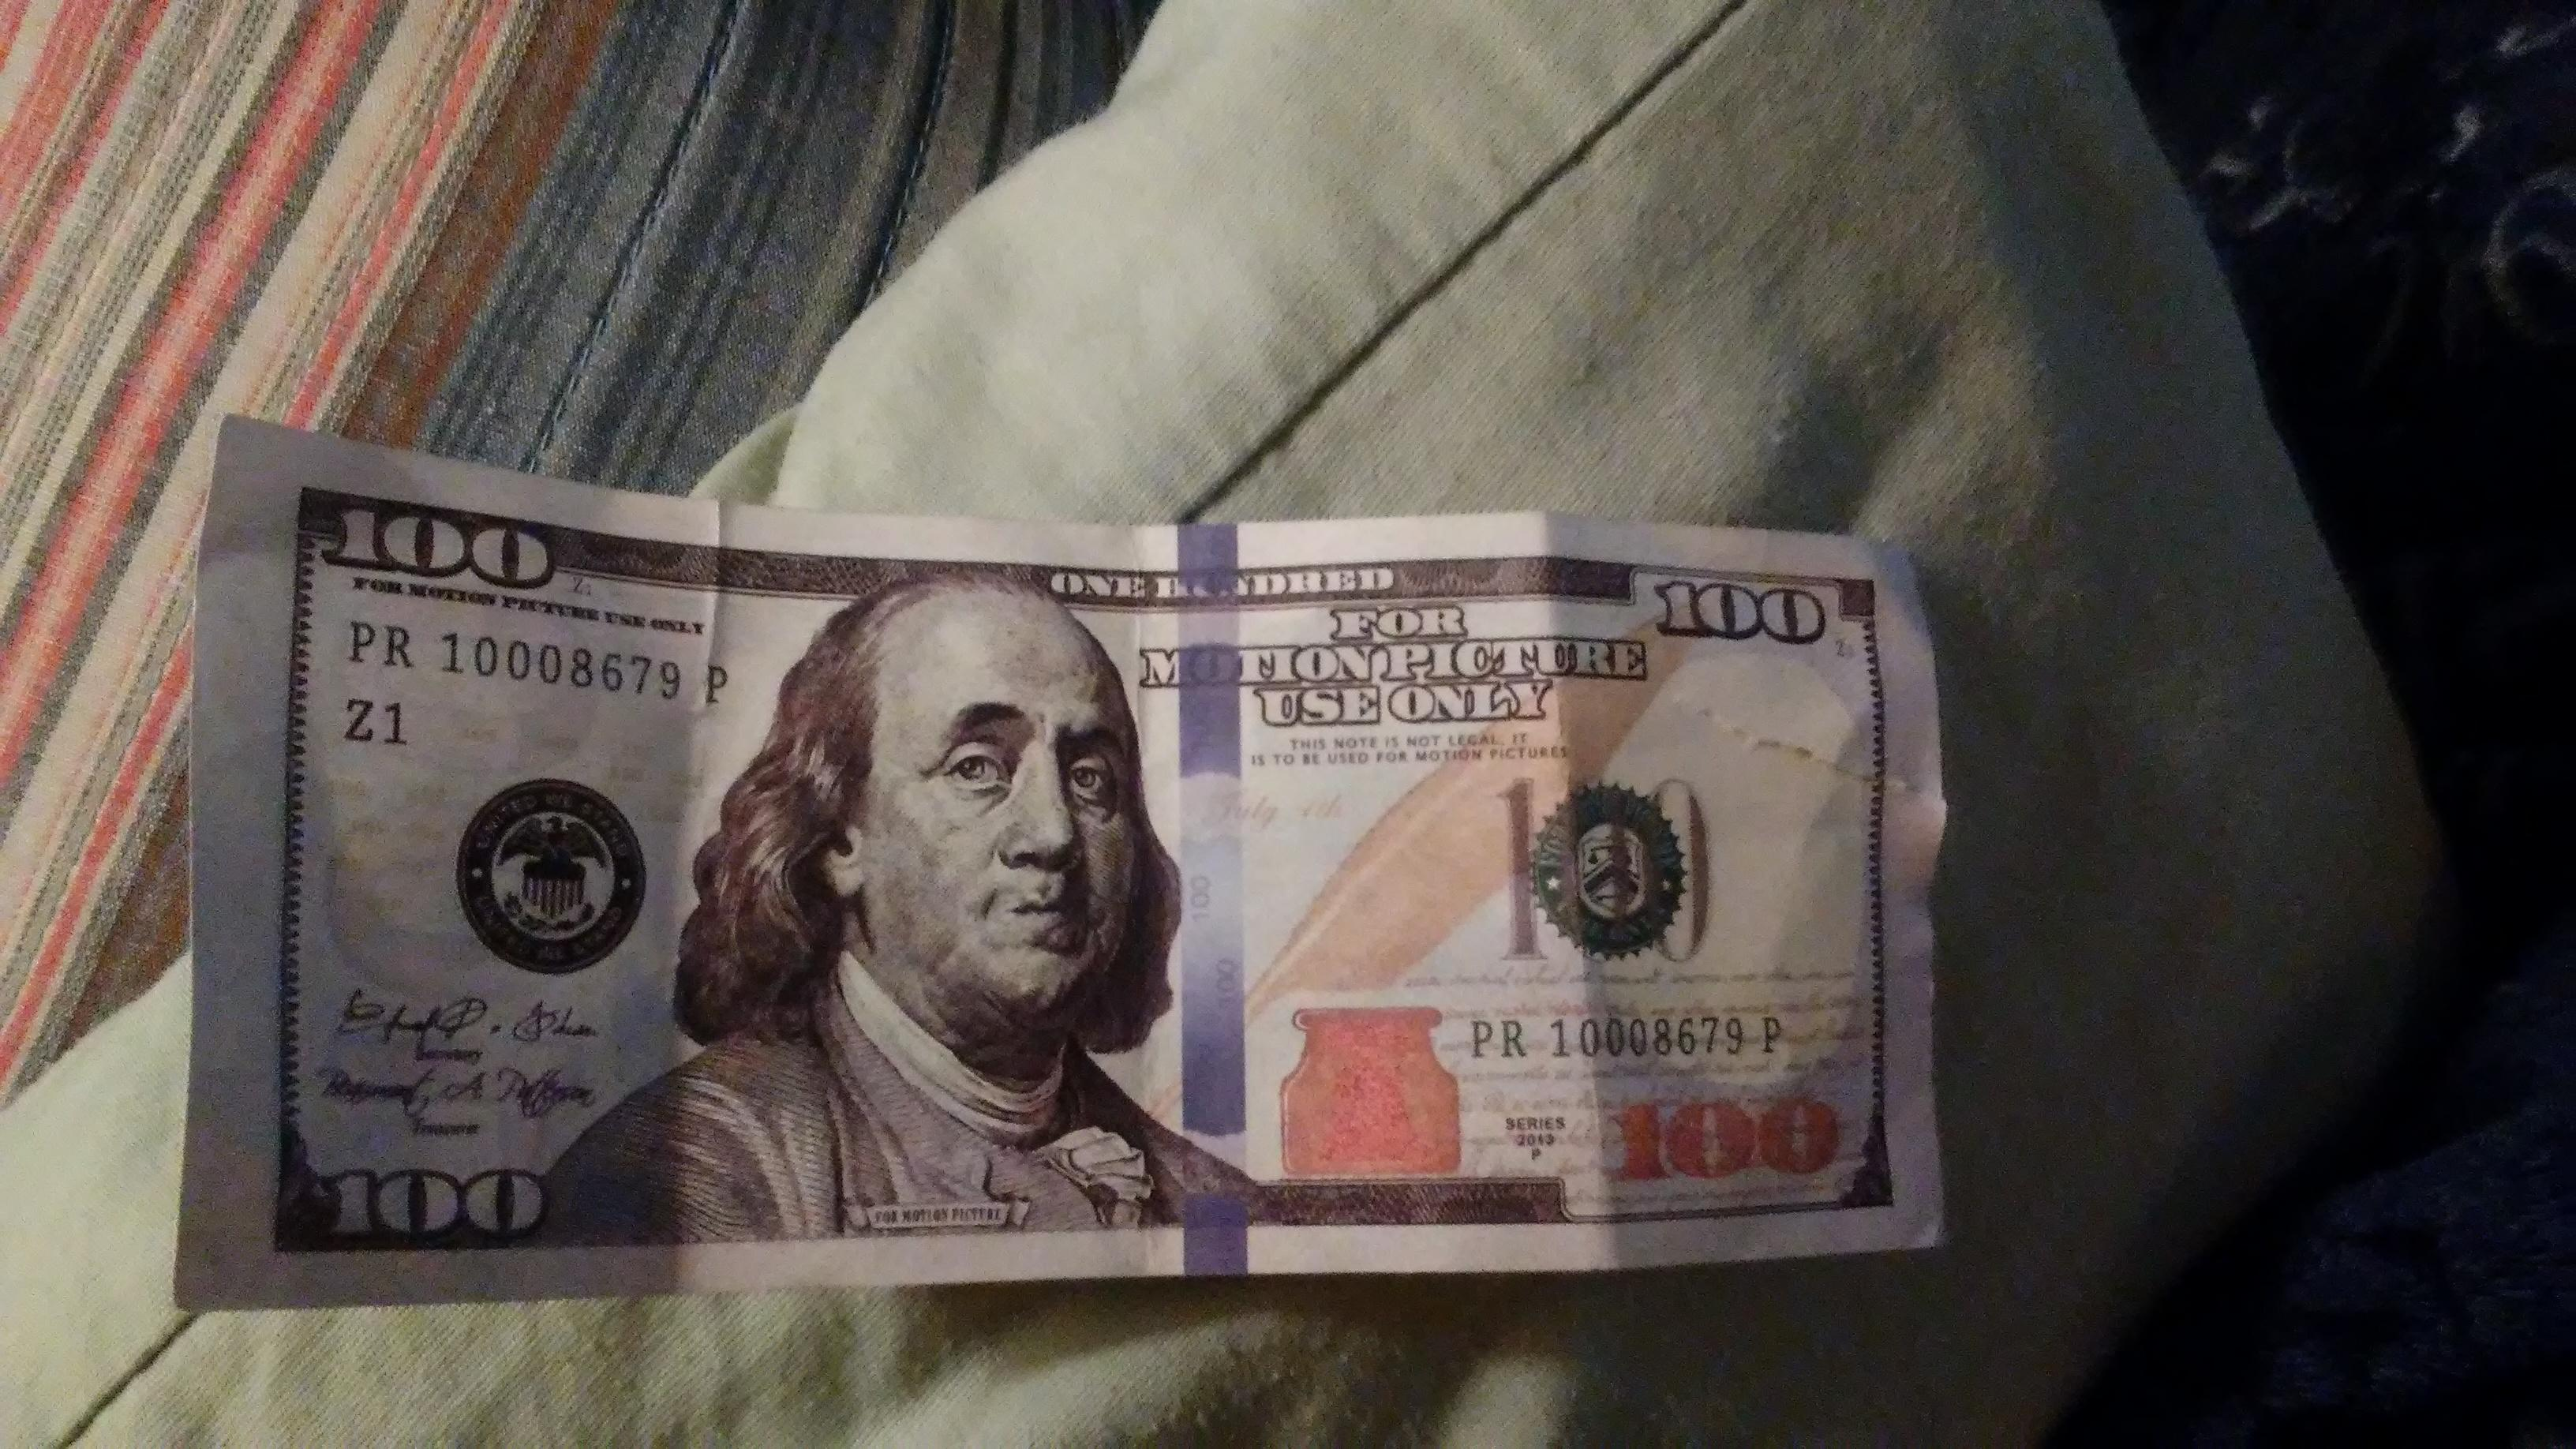 He learned moments later the $100 bill was bogus.{&amp;nbsp;}<p></p>